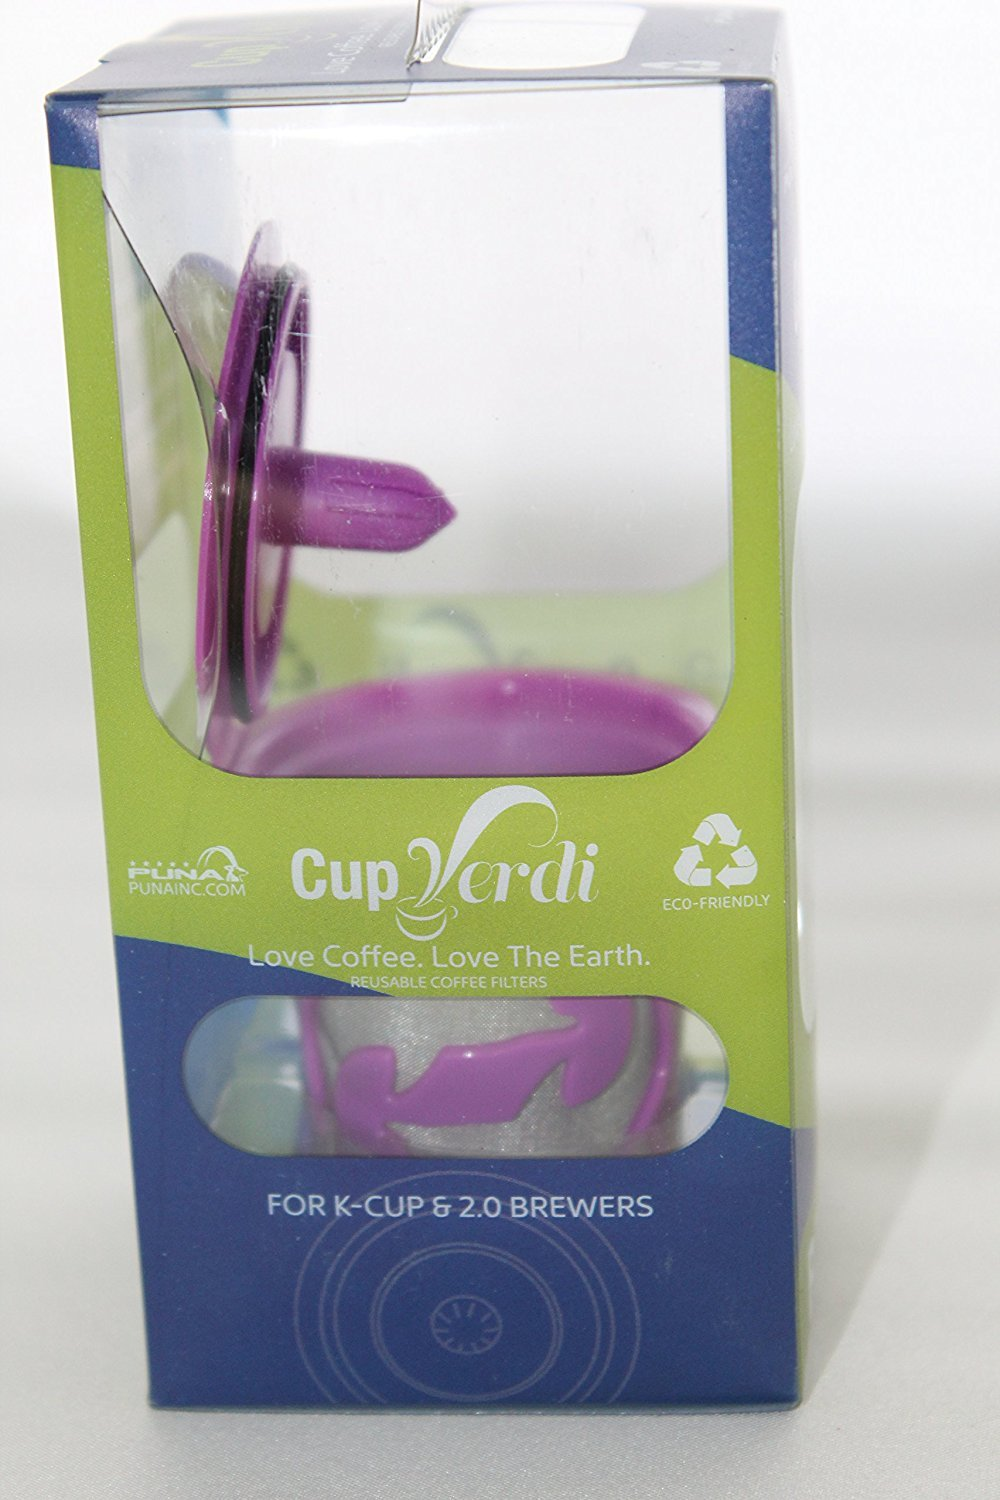 Cup Verde® Refillable 2.0 K-Cup For Keurig Brewers Reusable Coffee Filter Works In 2.0 Keurig Machine